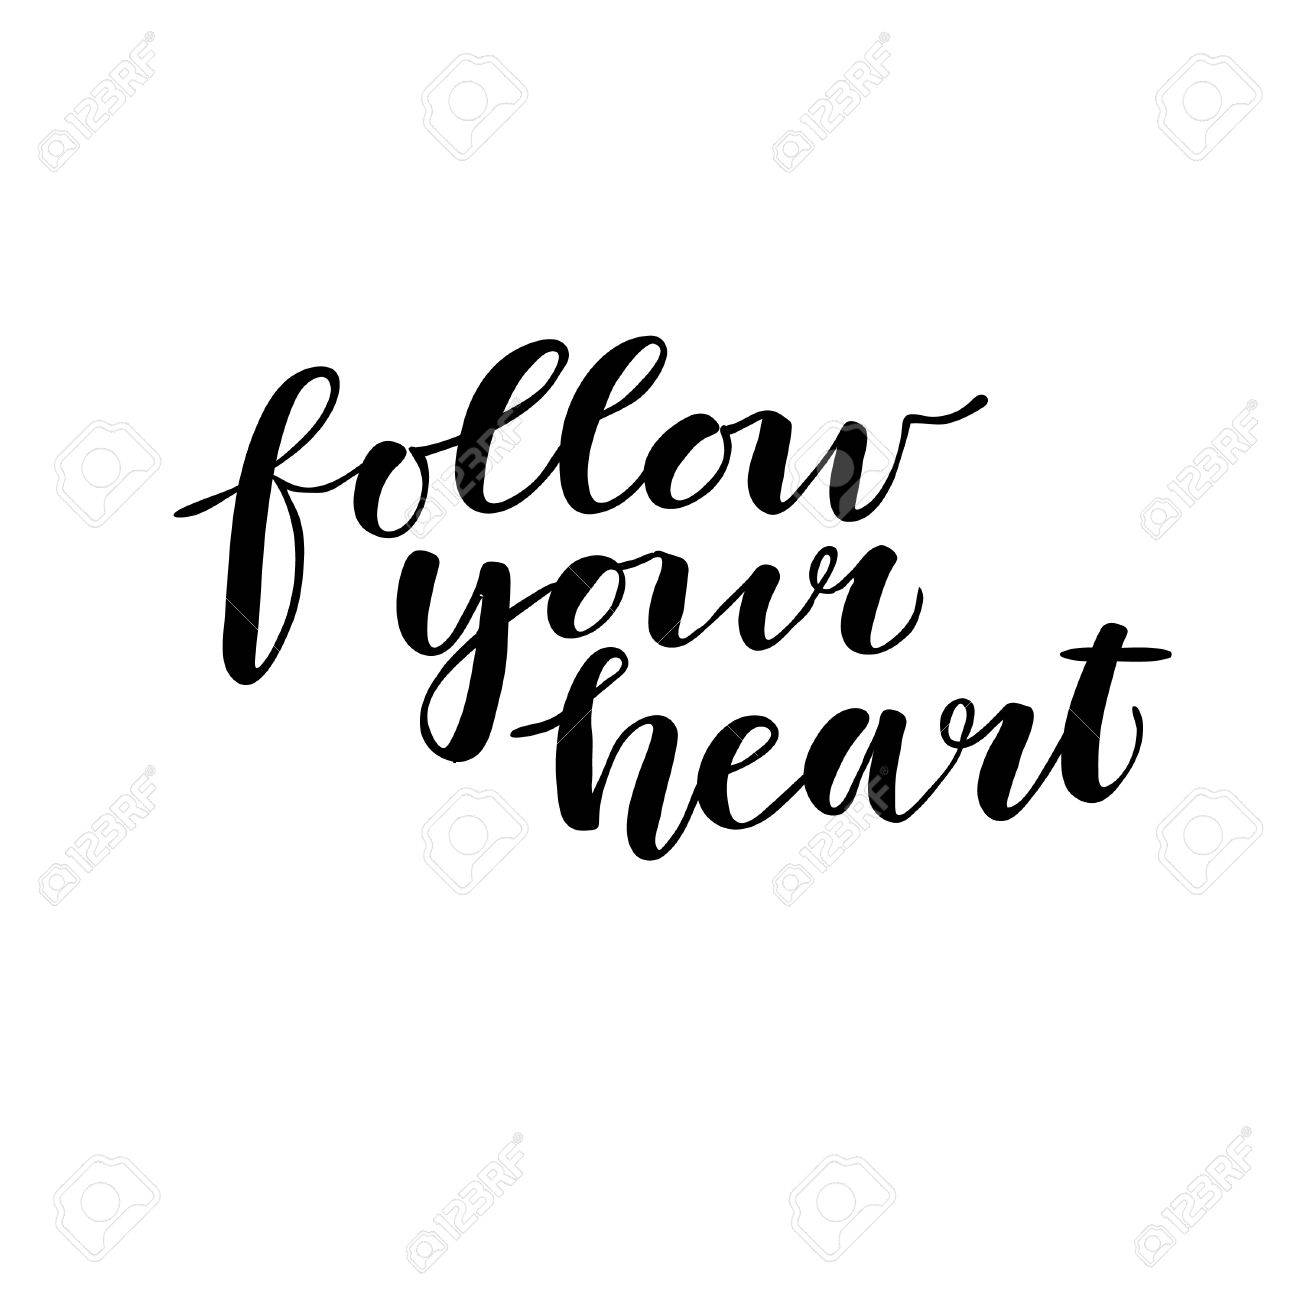 Follow Your Heart Hand Drawn Vector Illustration Follow Your Heart Hand Lettering